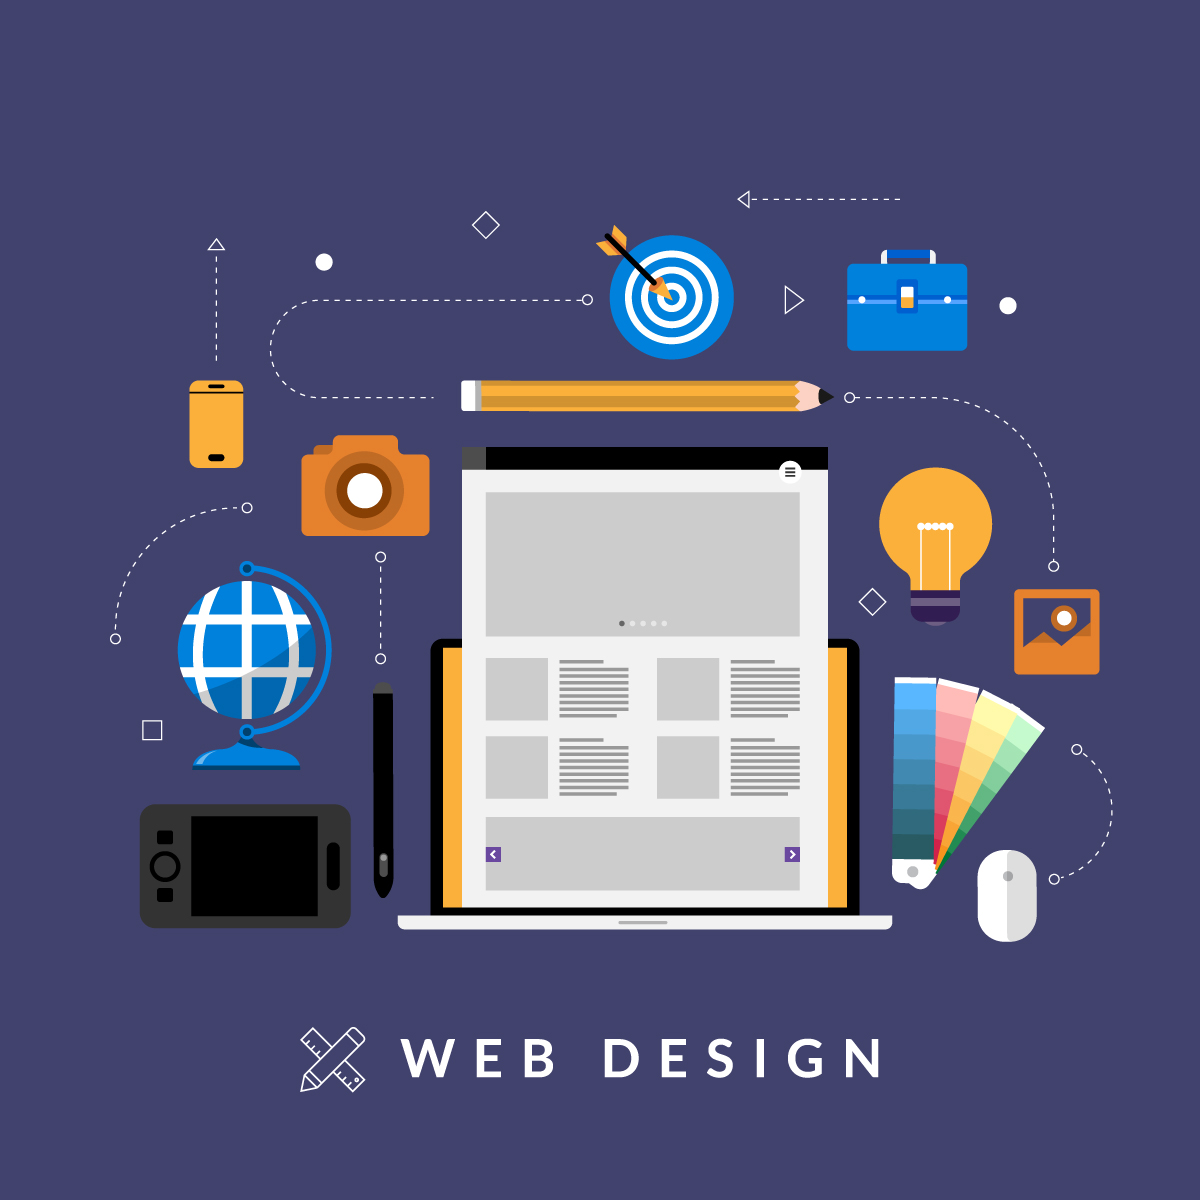 Website Design and SEO: 8 Design Tips to Get a Better Ranking